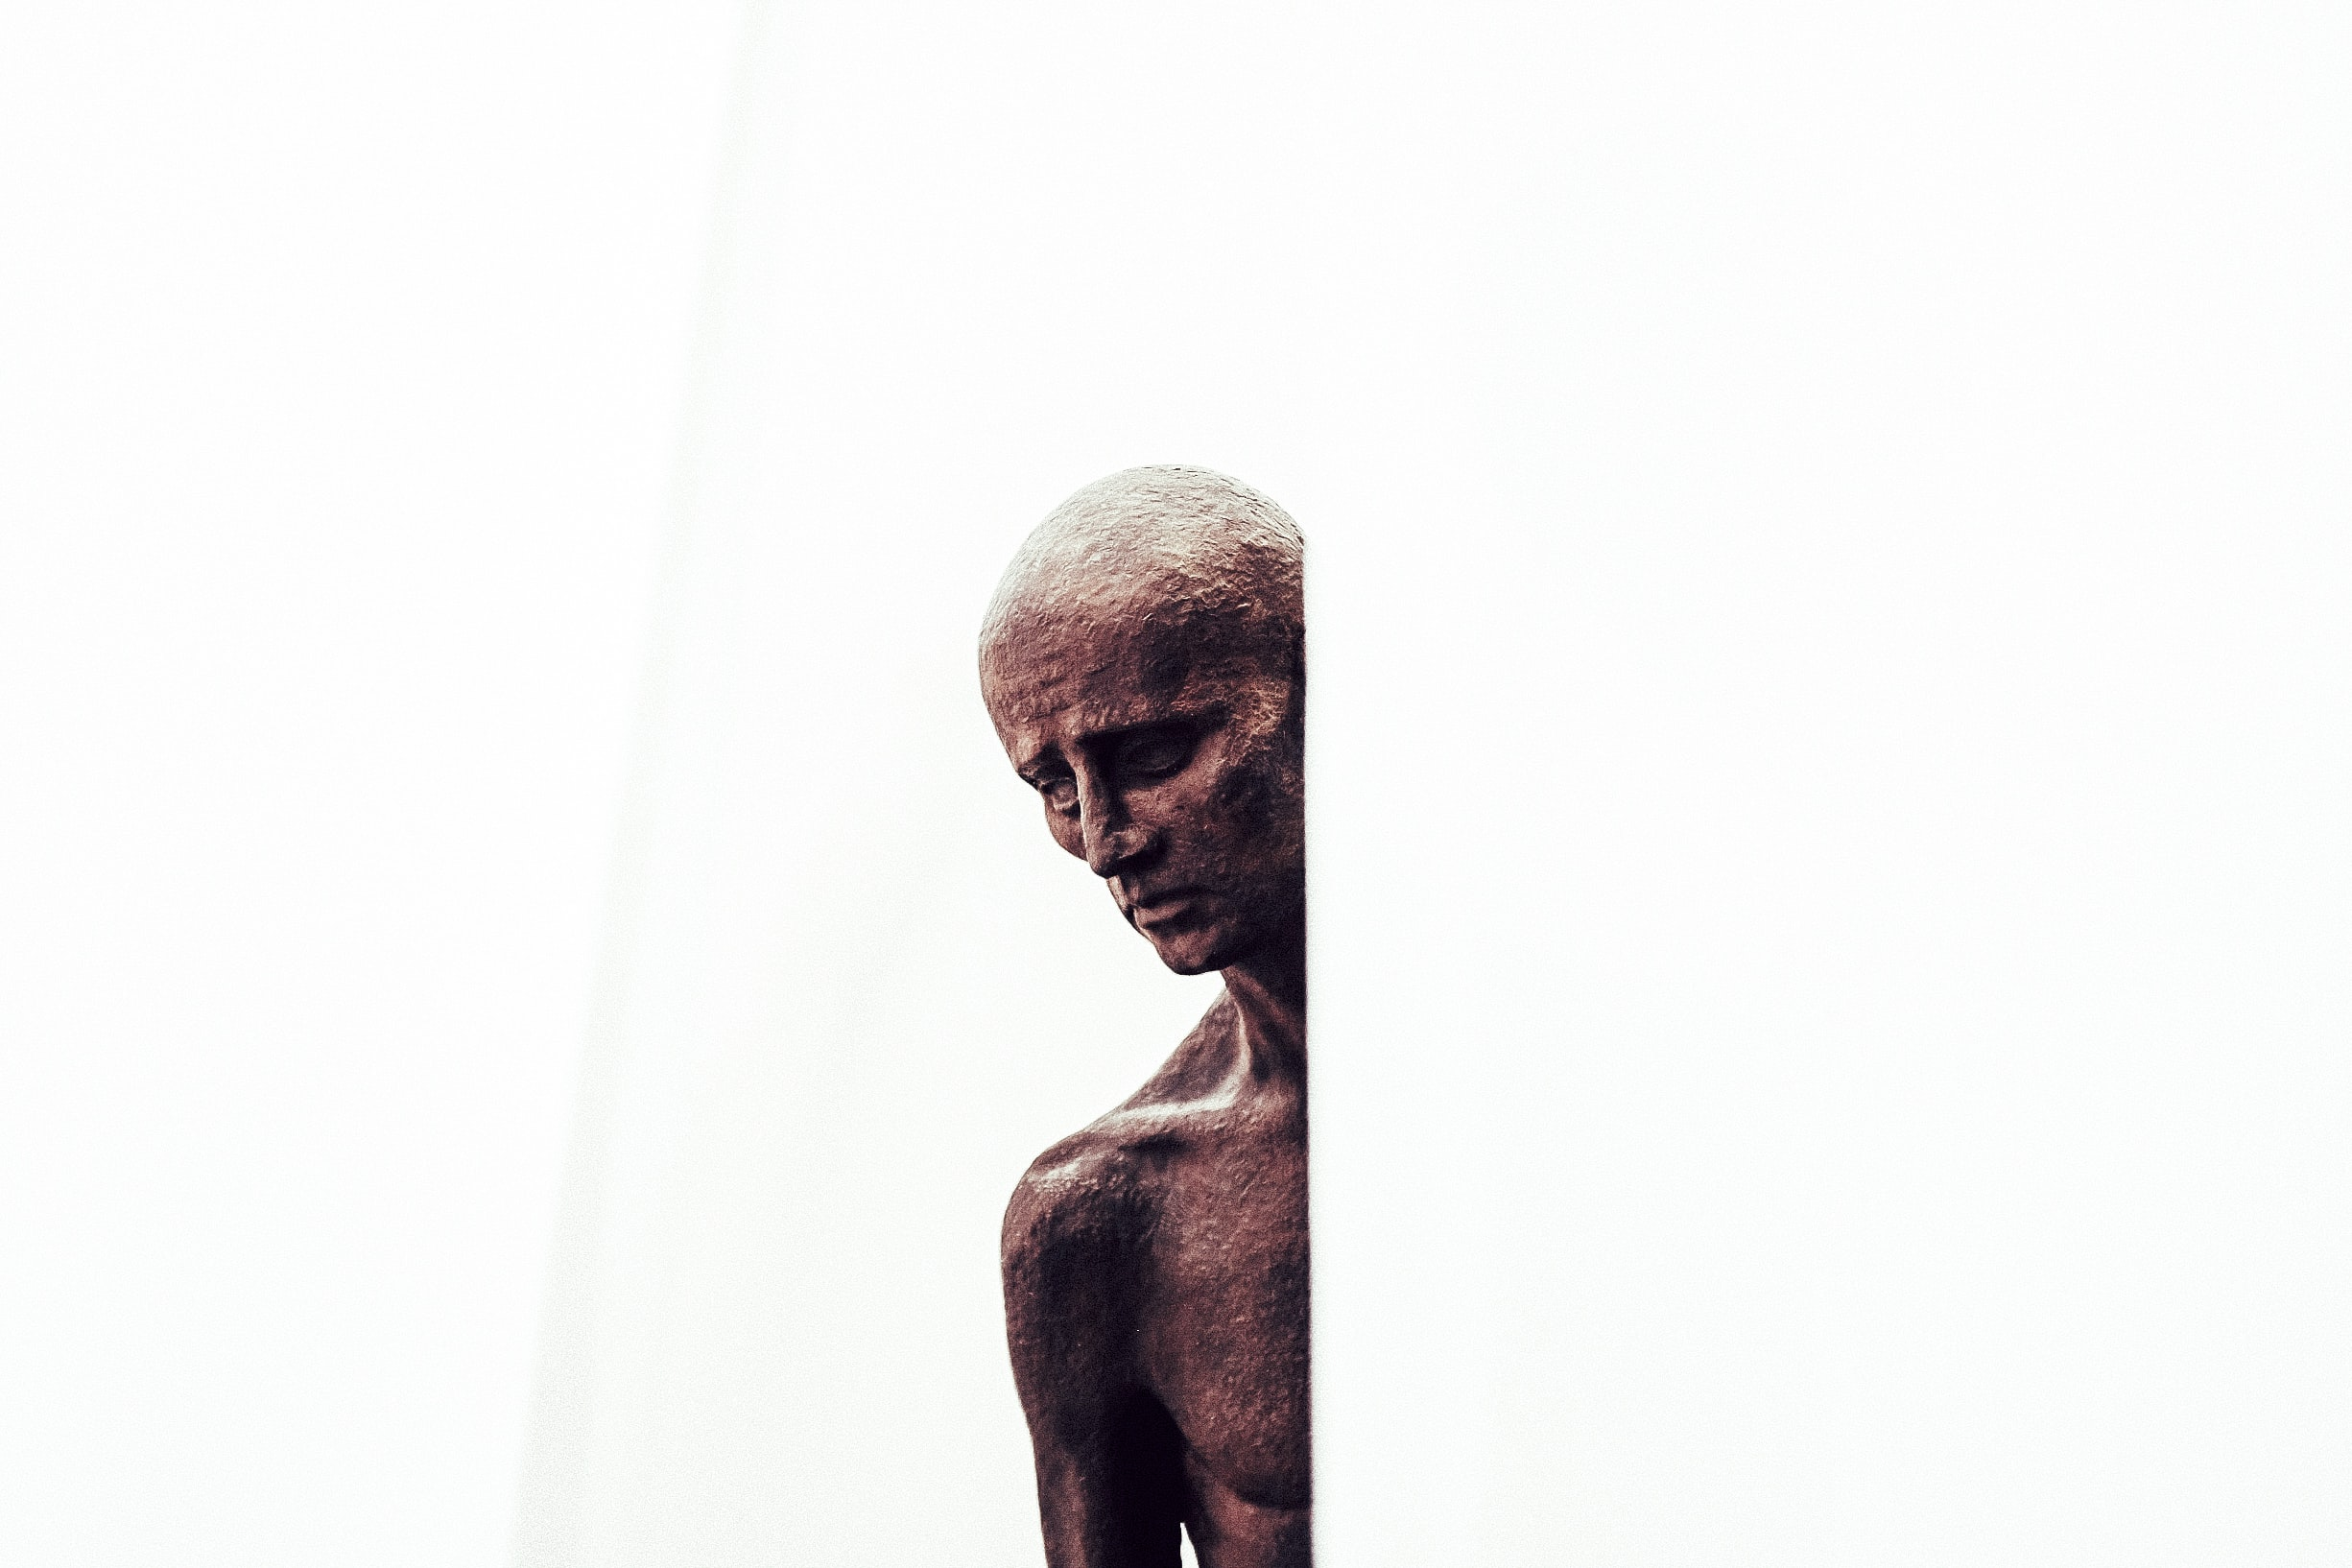 Somber copper statue of a naked man at an art museum